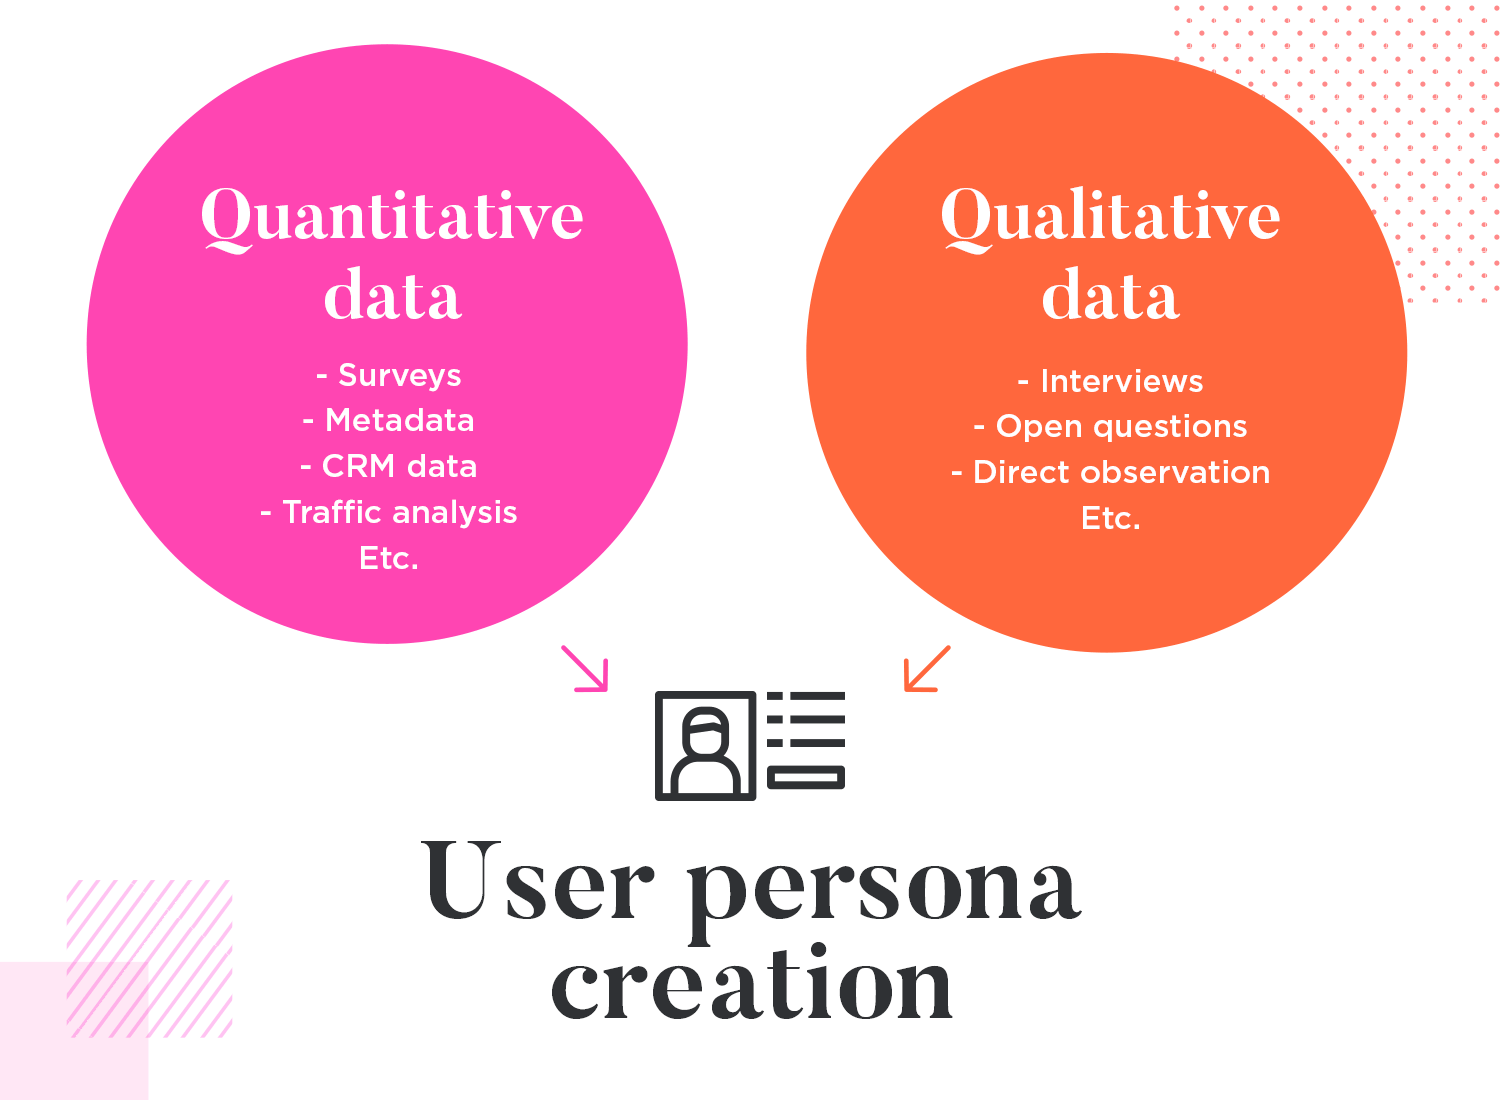 User personas use quantitative and qualitative data